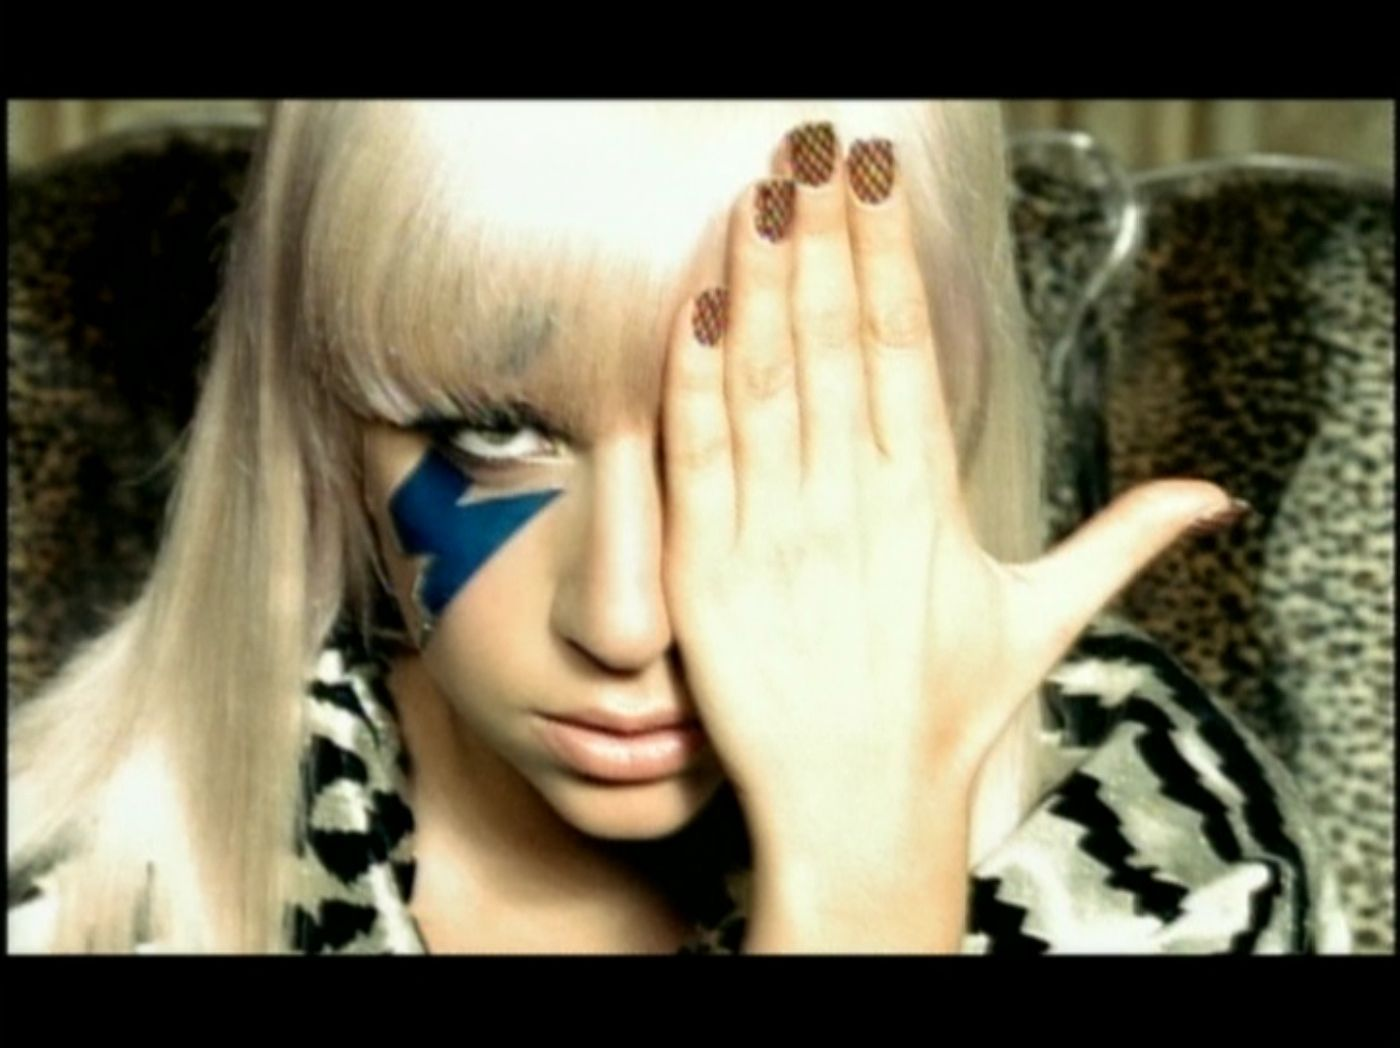 lady gaga - Just Dance - music video